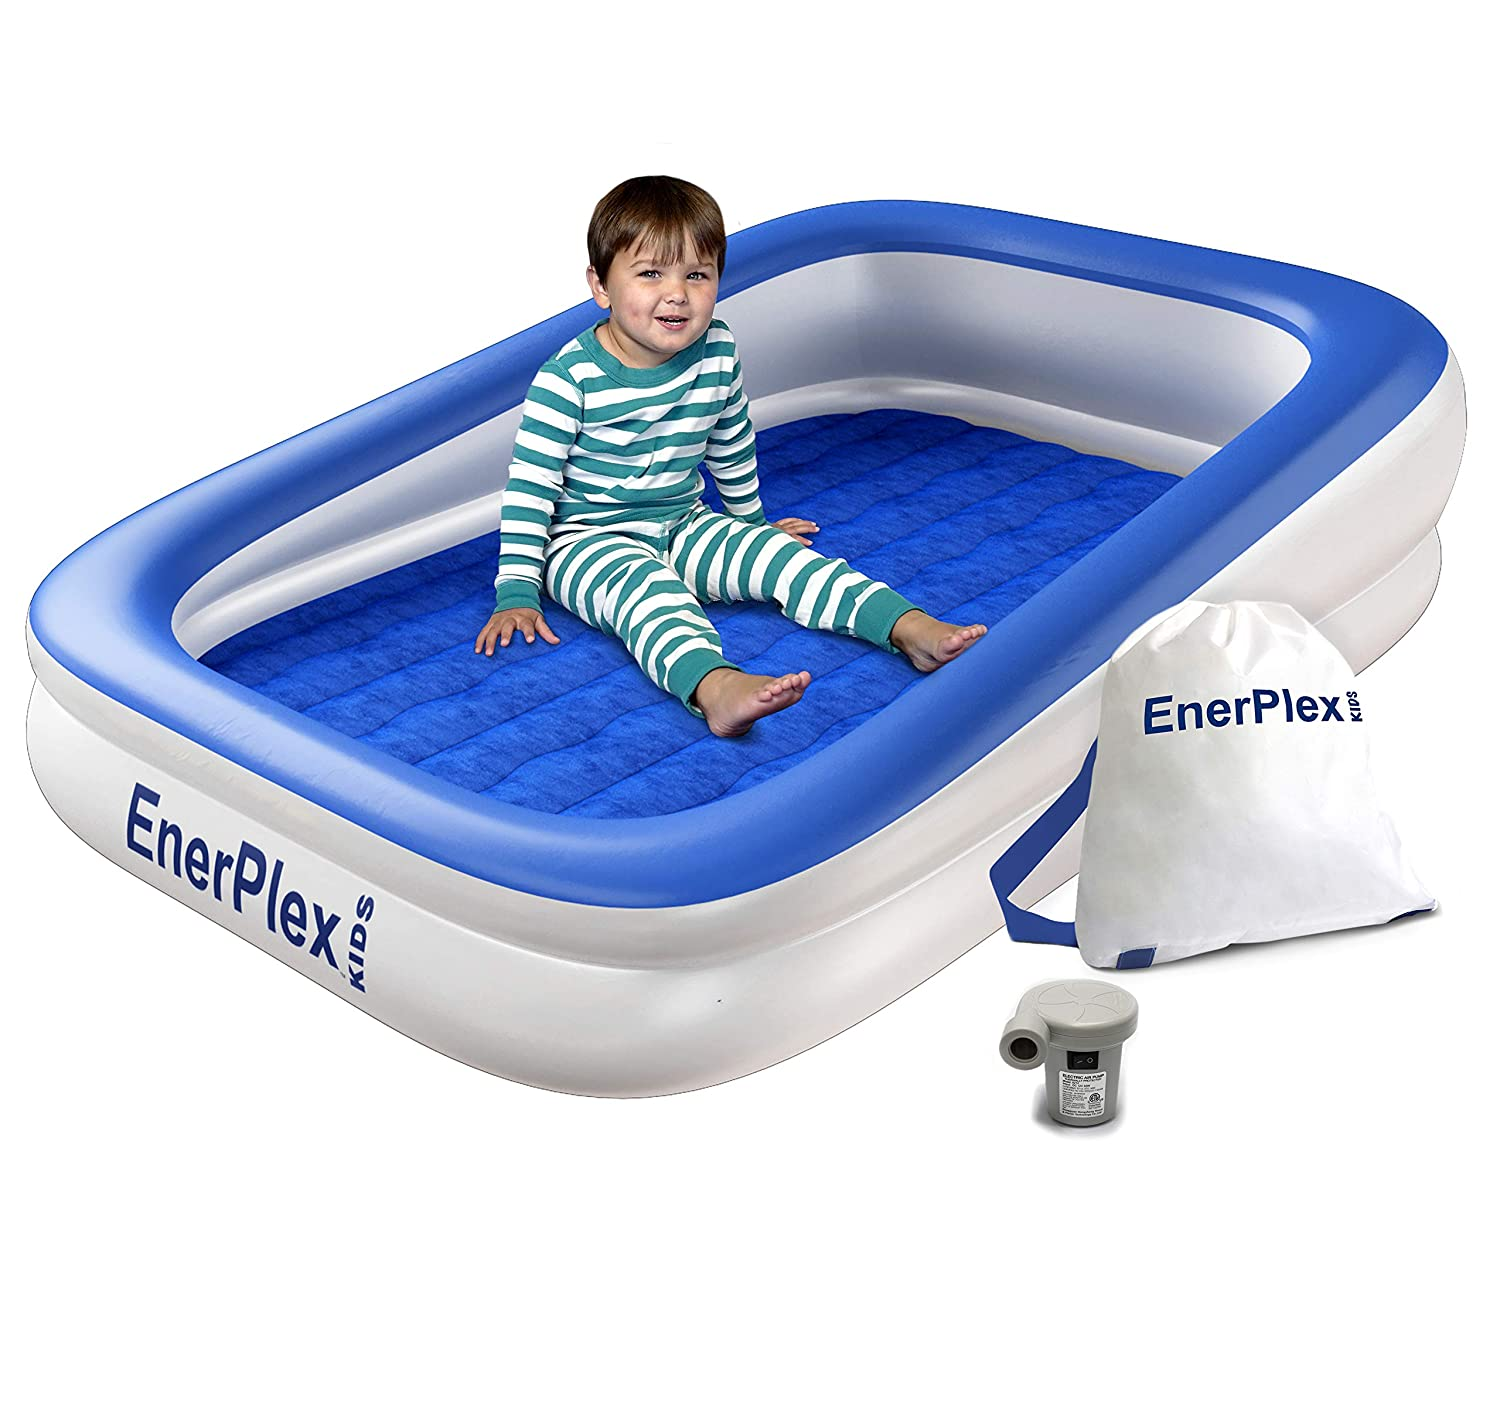 Toddler Bed Air Mattress.Enerplex Kids Inflatable Toddler Travel Bed With High Speed Pump Portable Air Mattress For Kids Blow Up Mattress With Sides Built In Safety Bumper